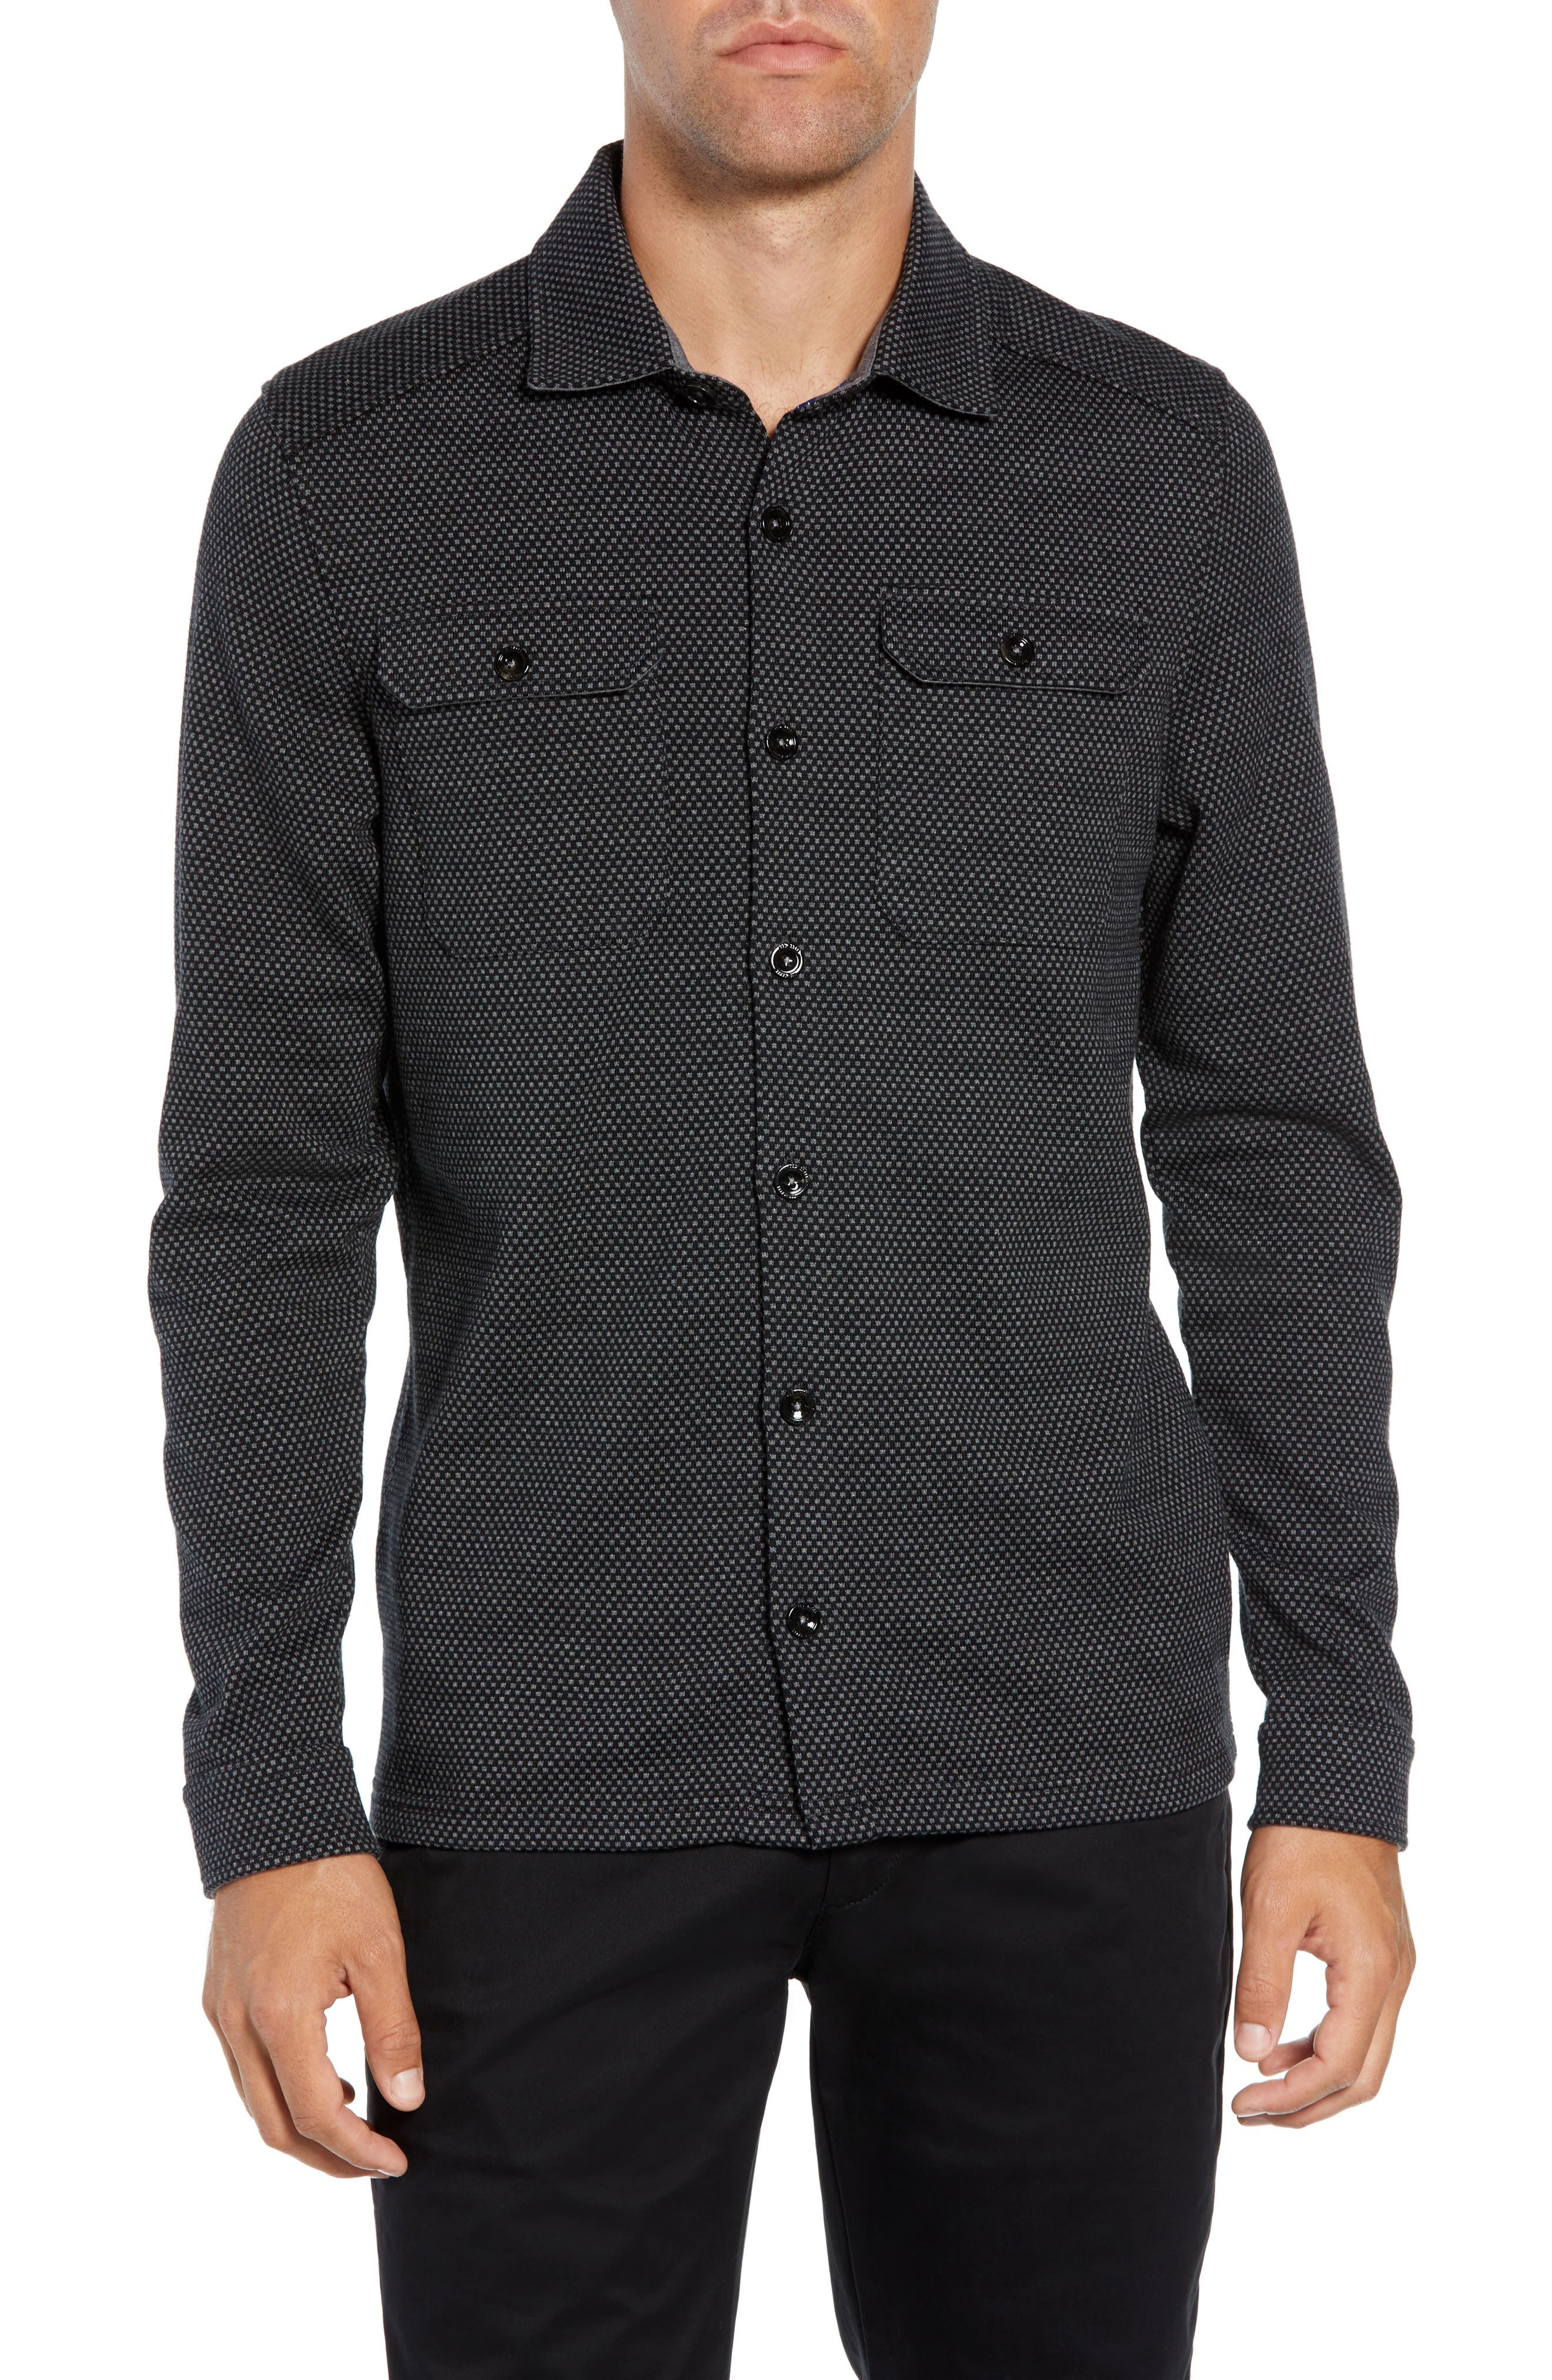 Toolow Trim Fit Solid Sport Shirt,                         Main,                         color, CHARCOAL